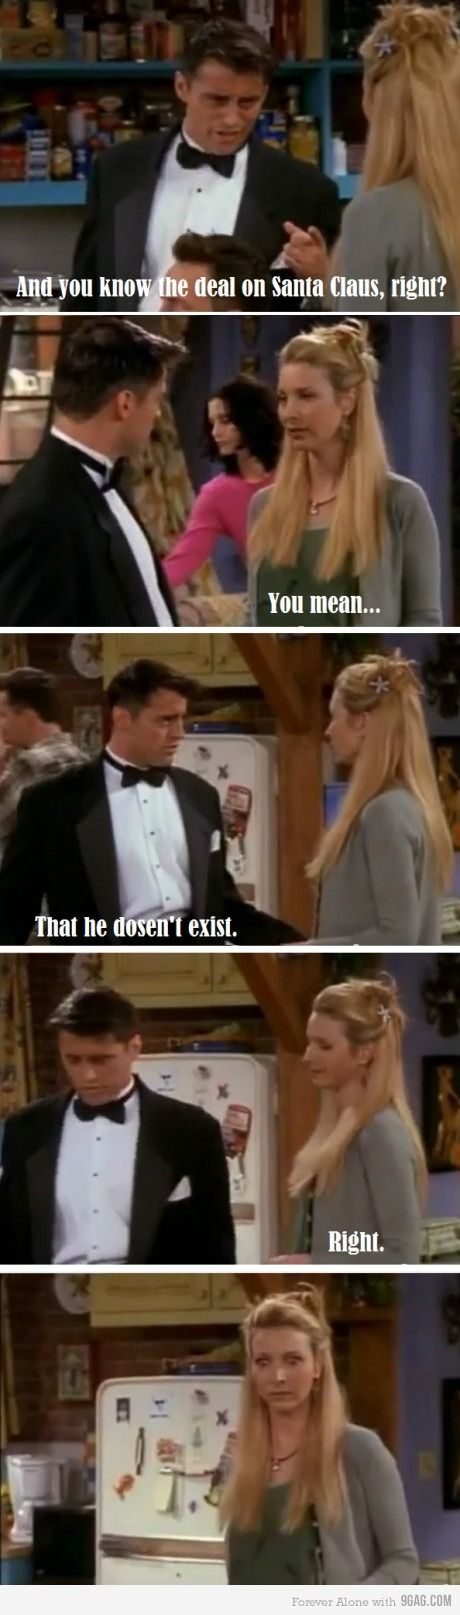 Joey: And you know the deal on Santa Claus, right? Phoebe: You mean... Joey: That he doesn't exist. Phoebe: Right. Friends TV show quotes